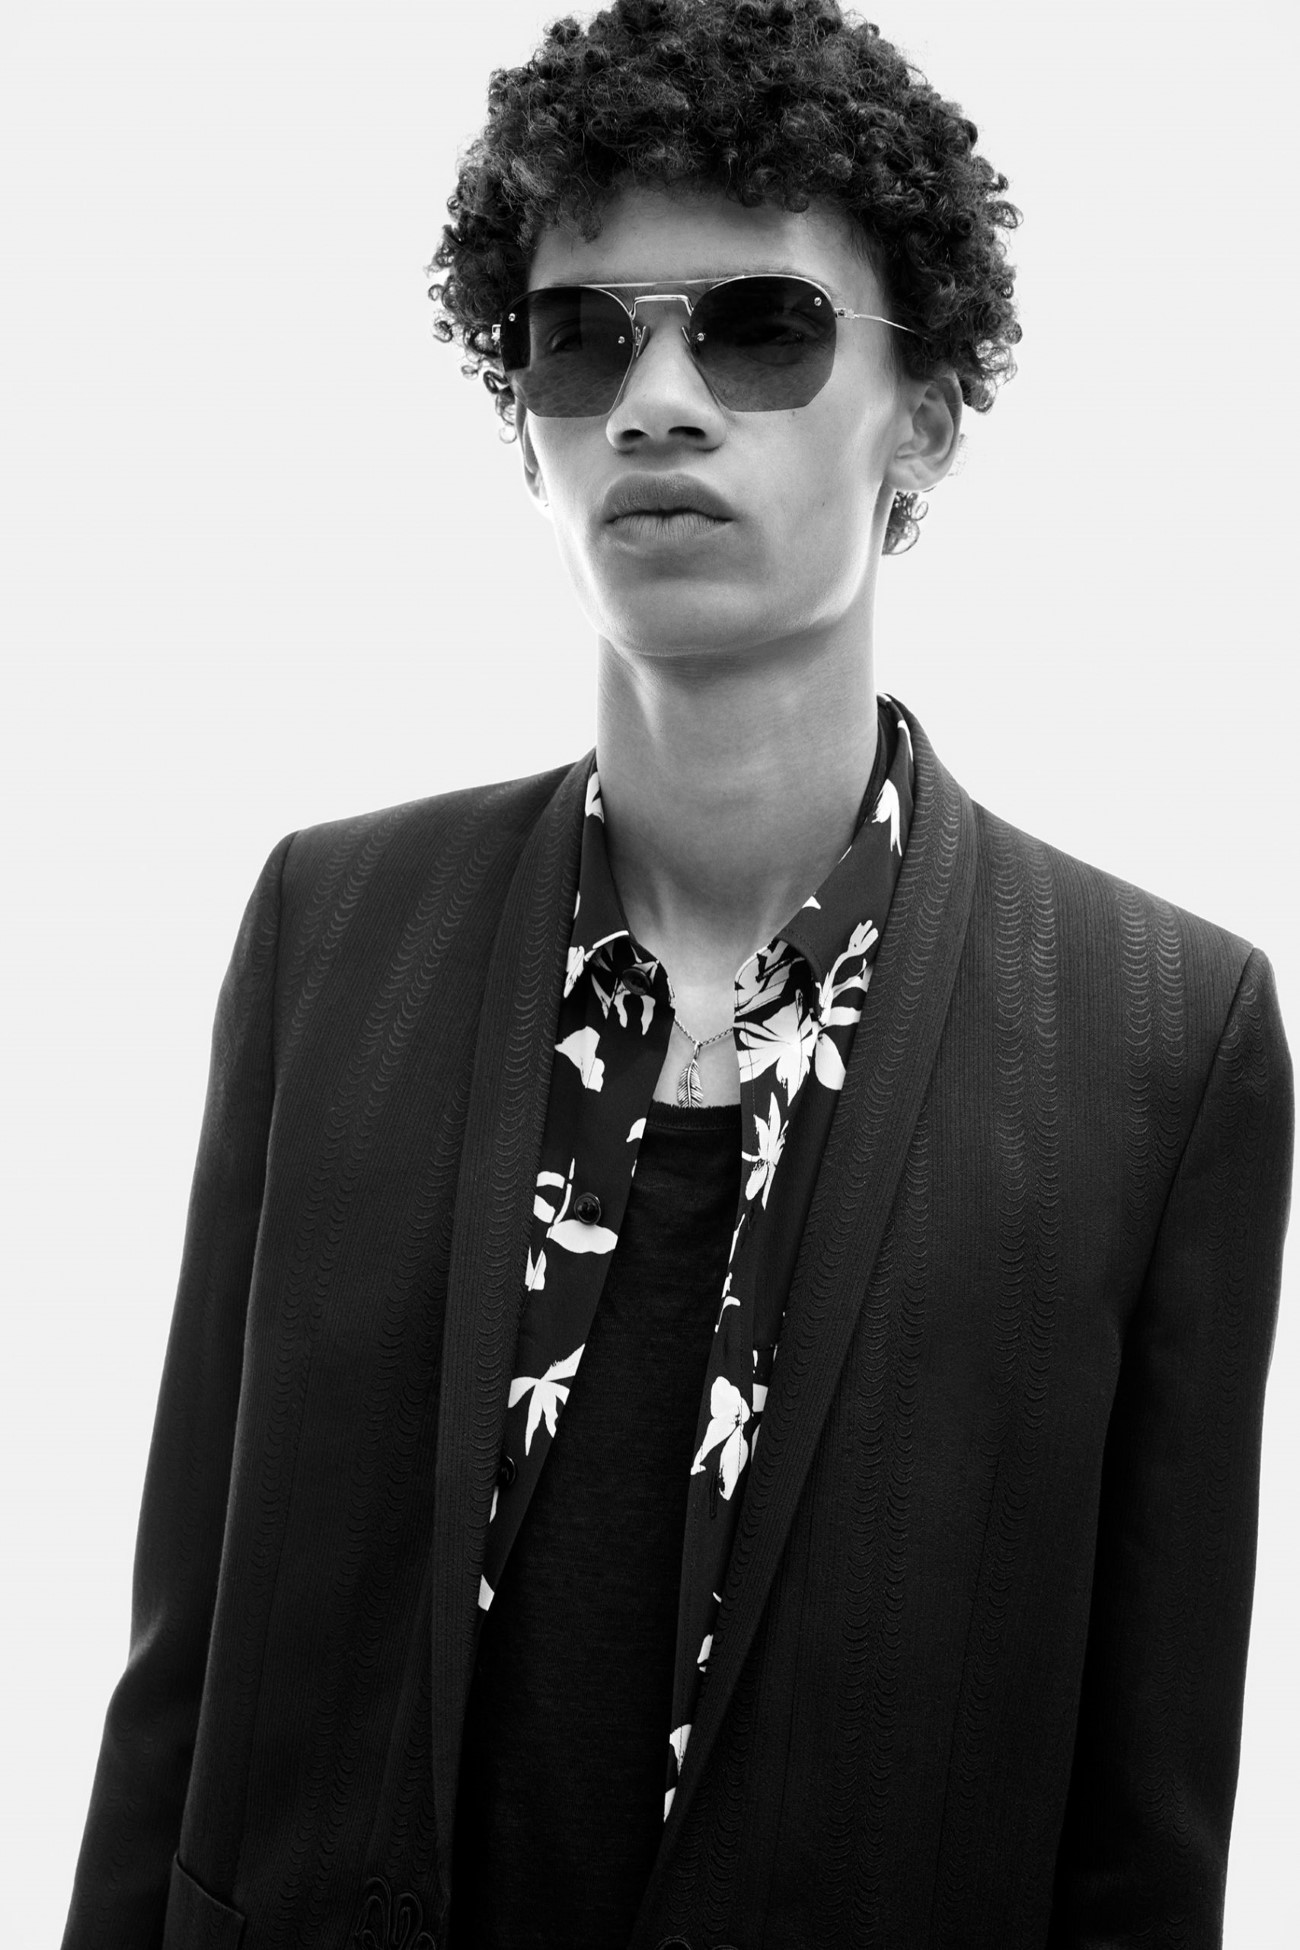 Saint Laurent Men's Spring Summer 2021